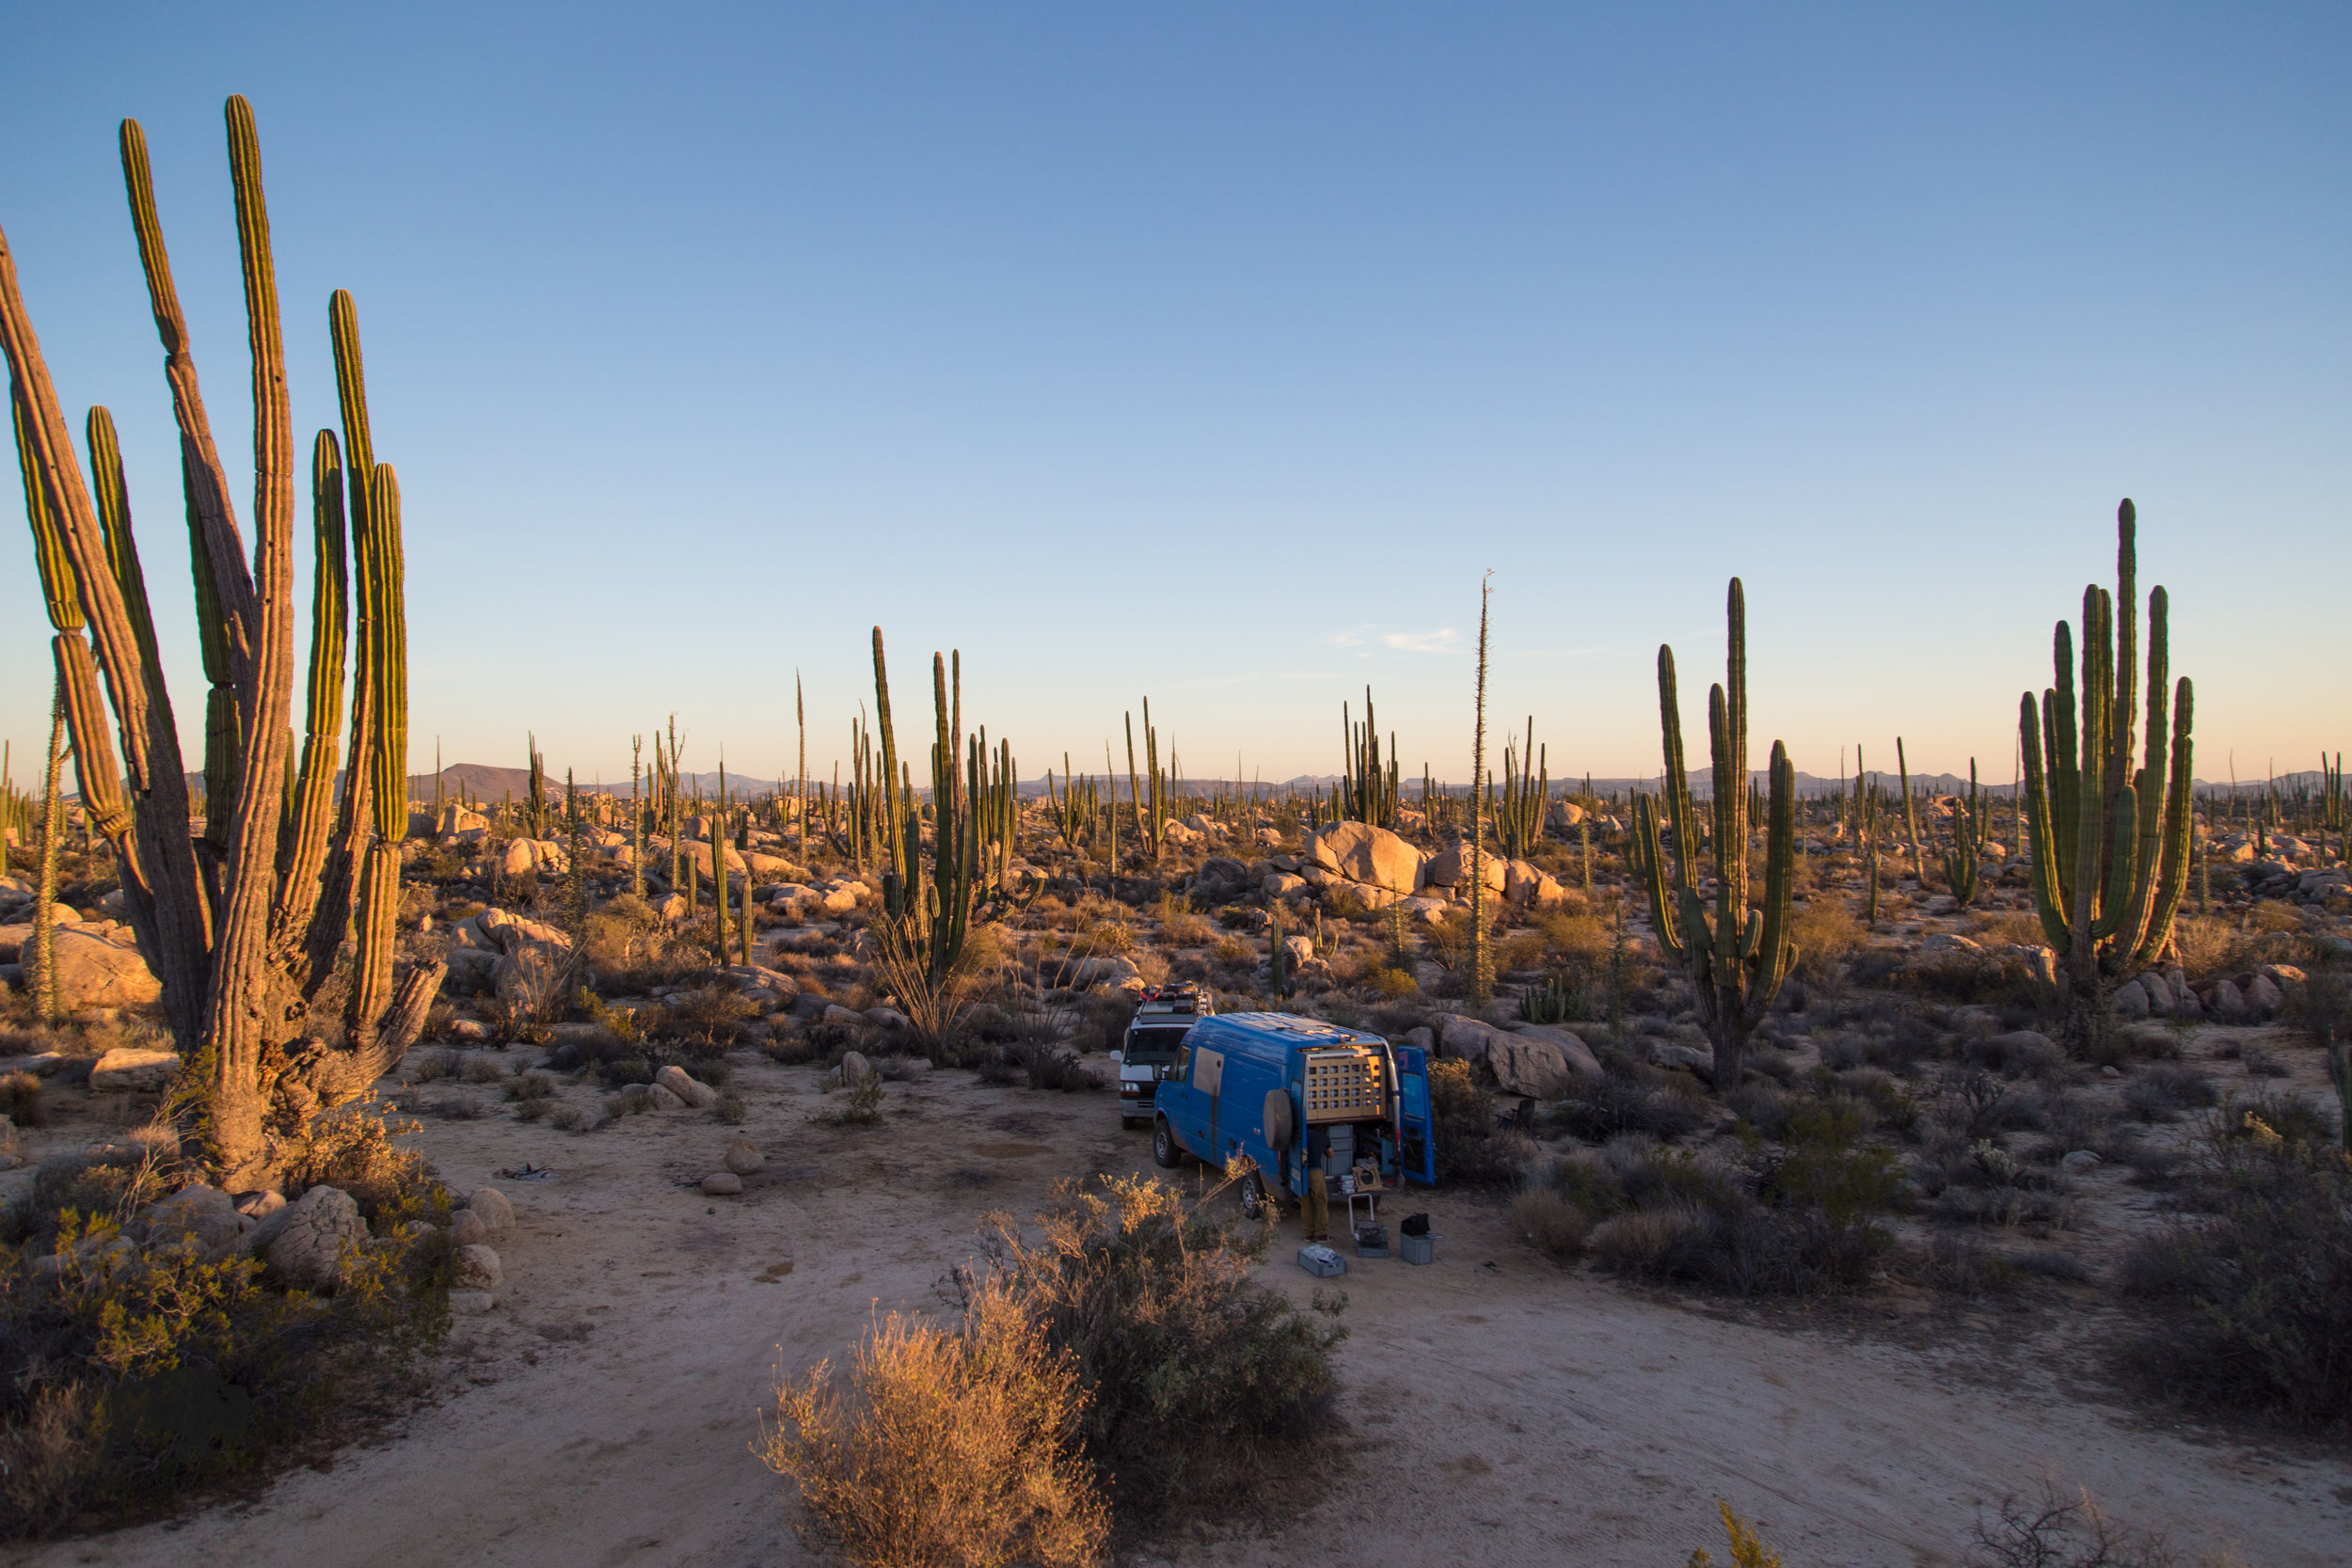 A cactus forest in Baja, Mexico where I ran out of fuel and had to syphon from Andres' Sprinter van.